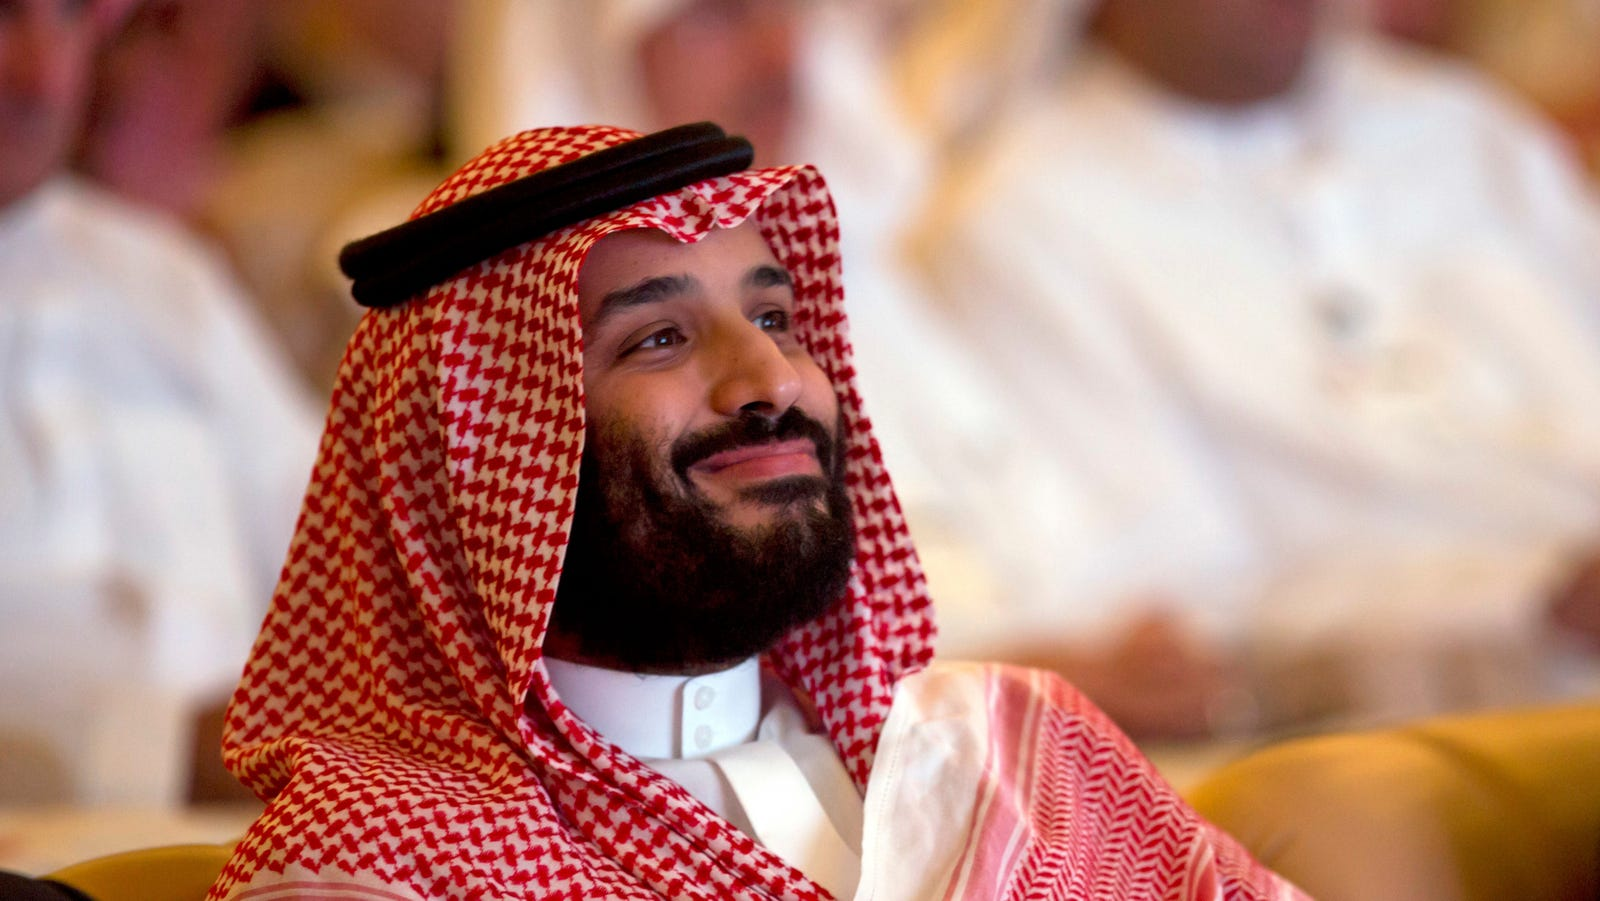 All These Extremely Powerful People May Want to Double Check They Weren't Hacked by a Saudi Prince